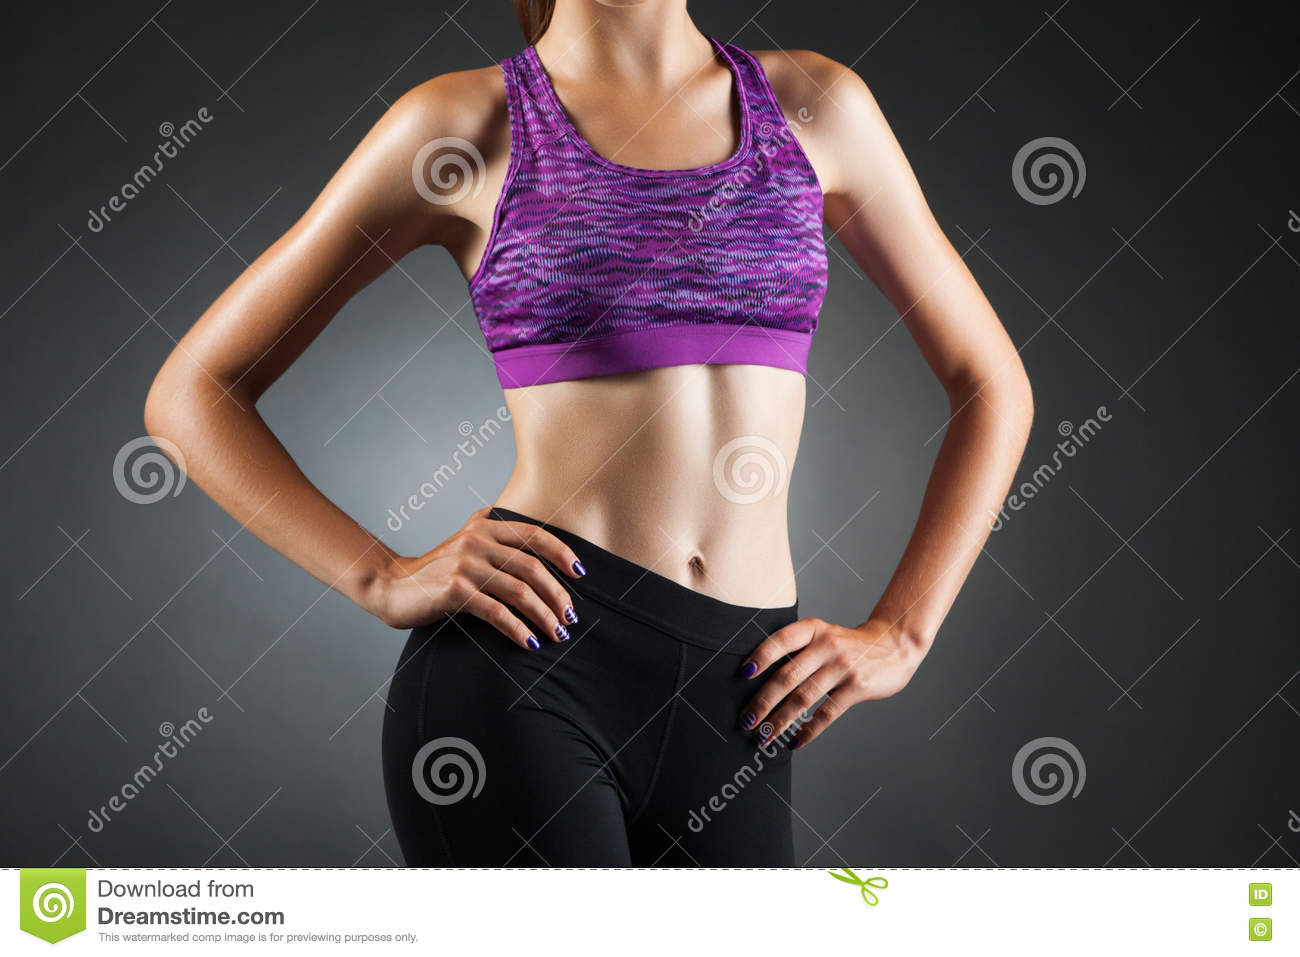 6bf768a1b Fit anonymous sport-girl akimbo in black yoga pants and purple top. Studio  portrait black background.